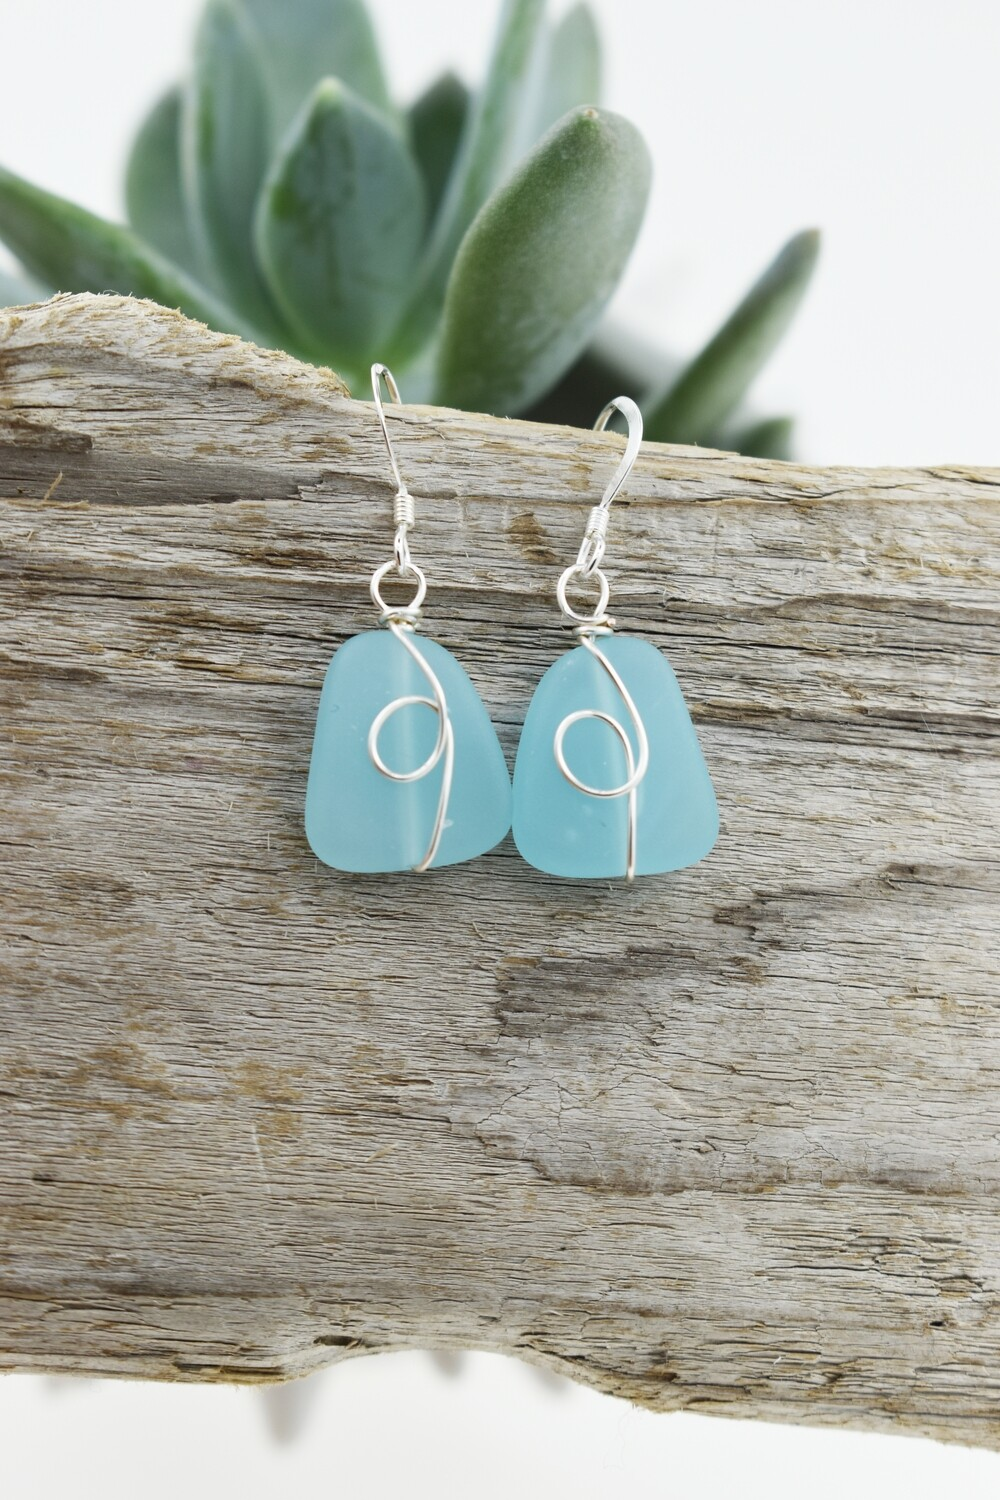 Organic Silver Wired Seaglass Earrings